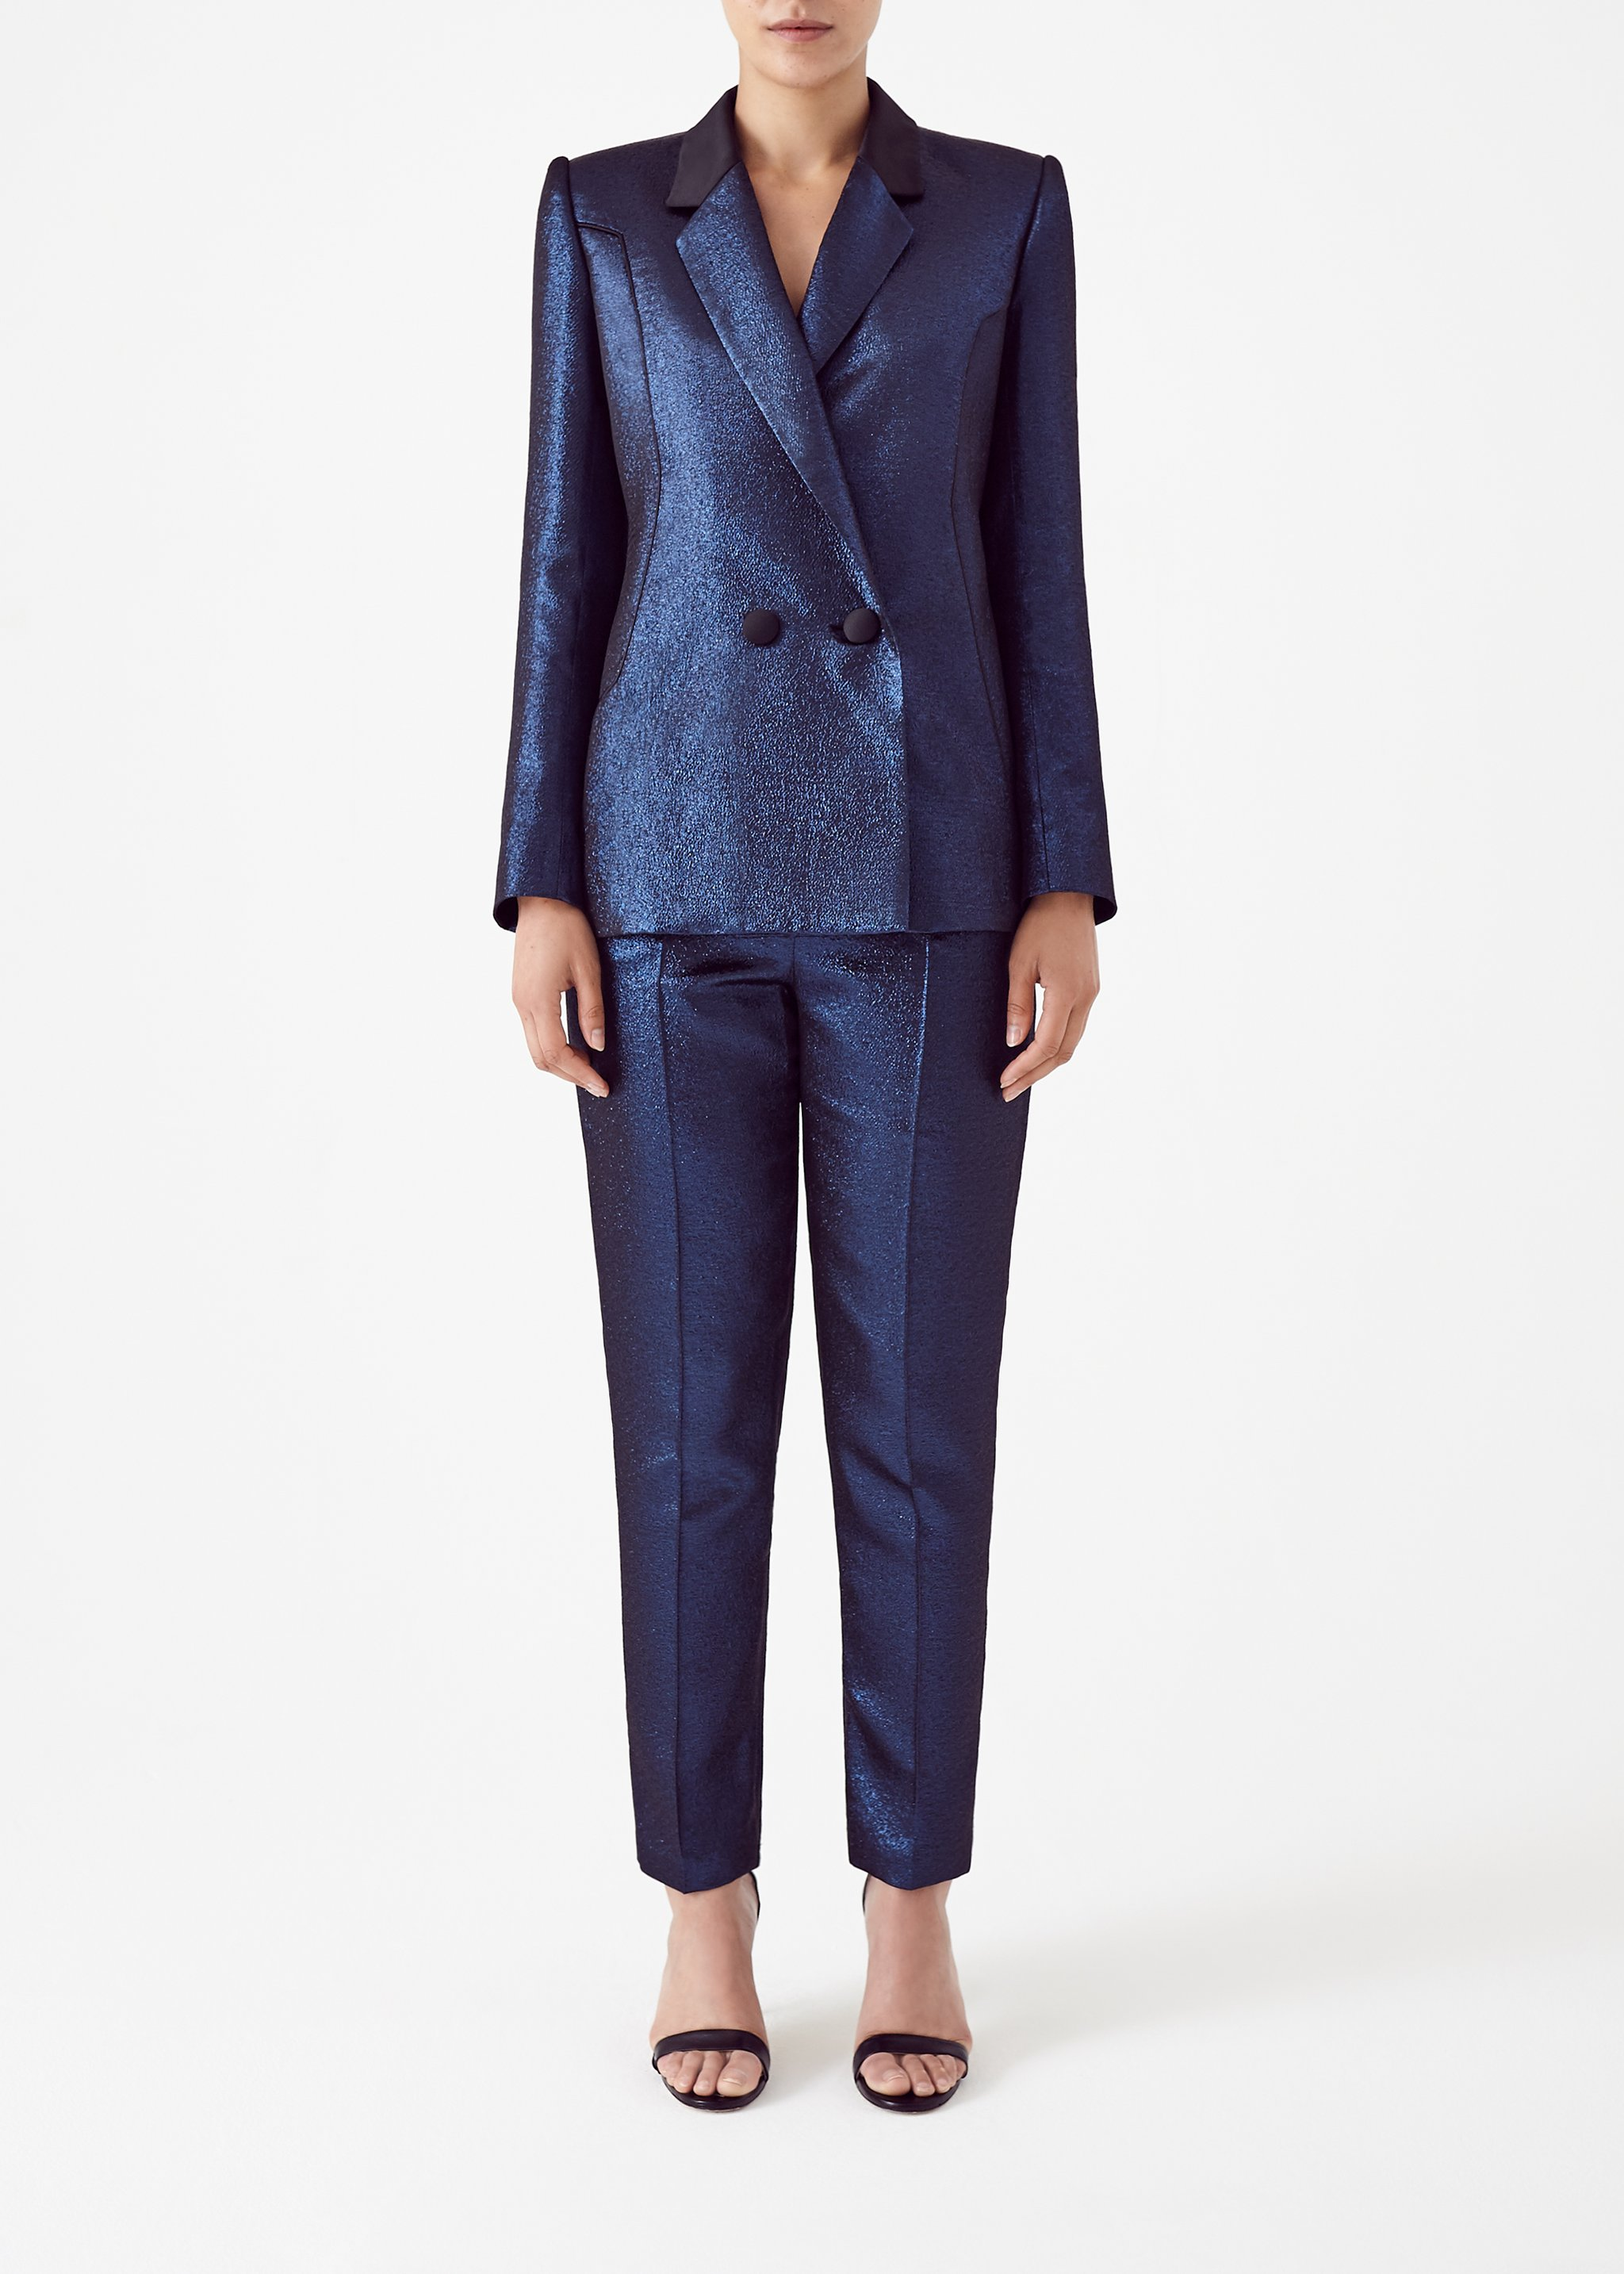 Blue Aphrodite Jacket by Bozena Jankowska on curated-crowd.com